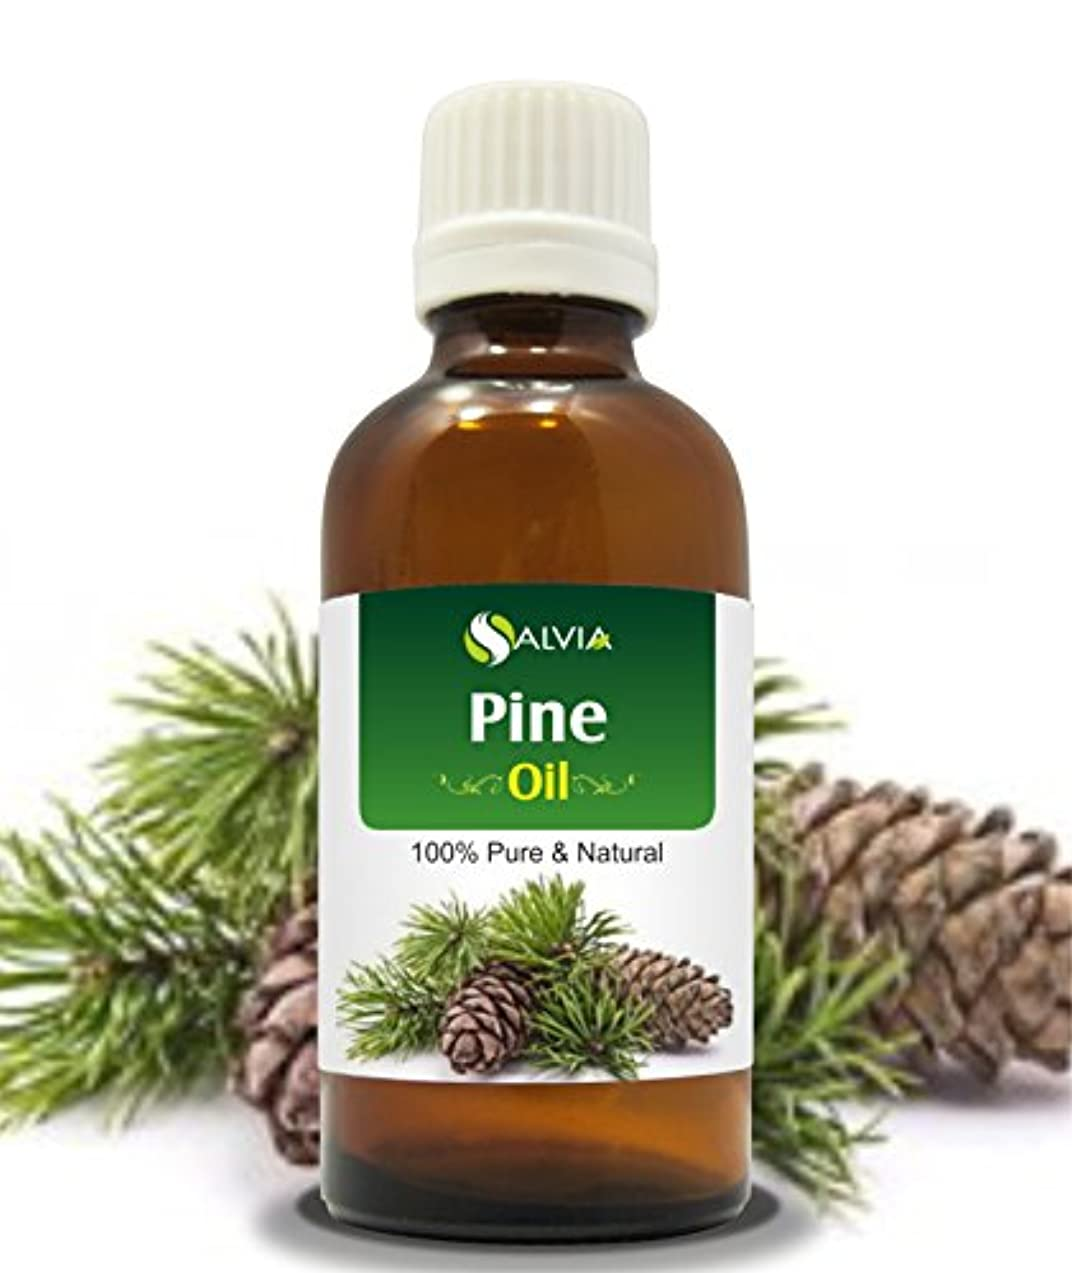 合理的失ブラウスPINE OIL 100% NATURAL PURE UNDILUTED UNCUT ESSENTIAL OIL 30ML